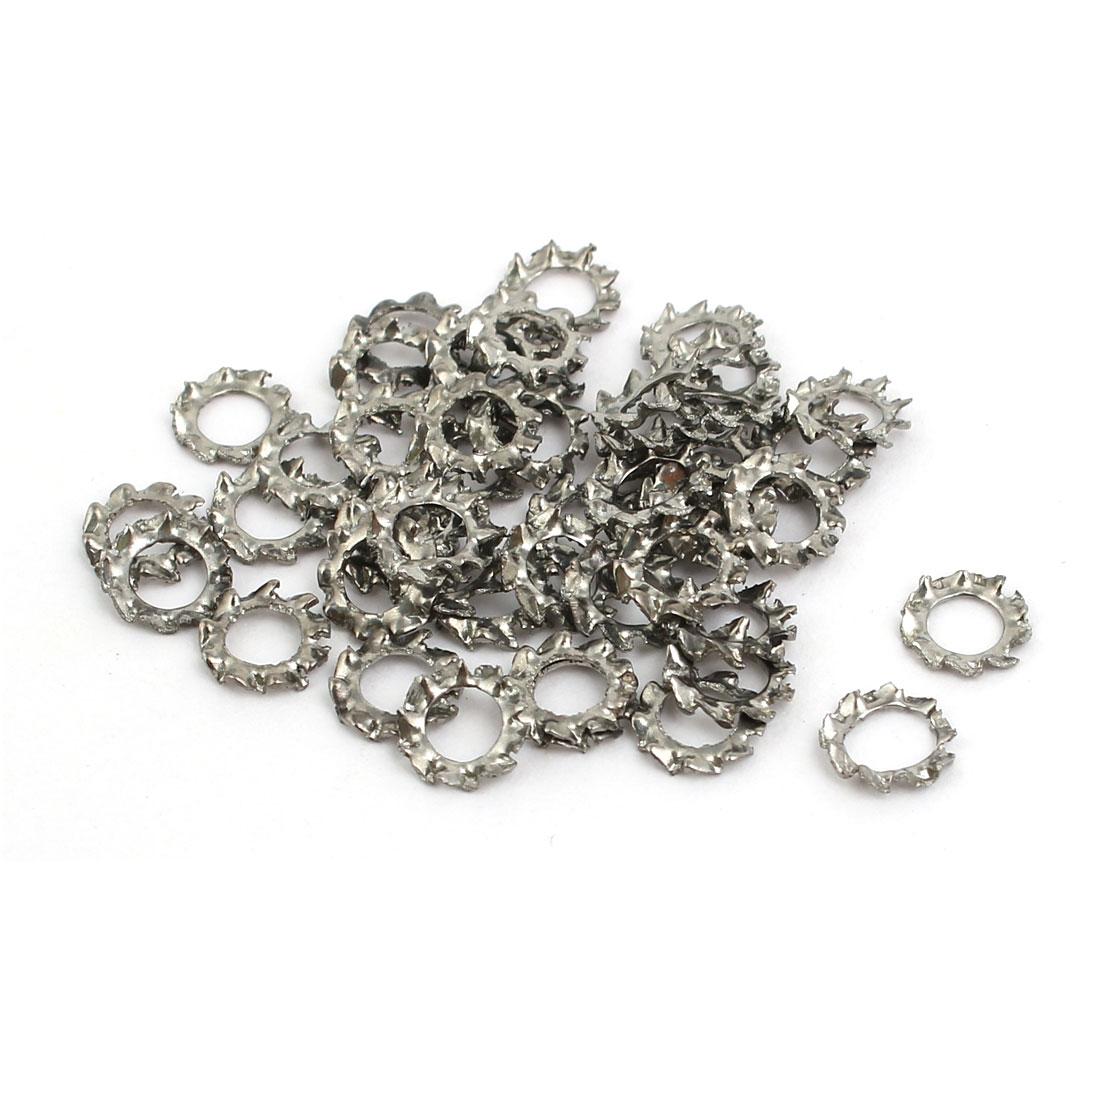 3mm Inner Dia 304 Stainless Steel External Tooth Lock Washer Silver Tone 50pcs